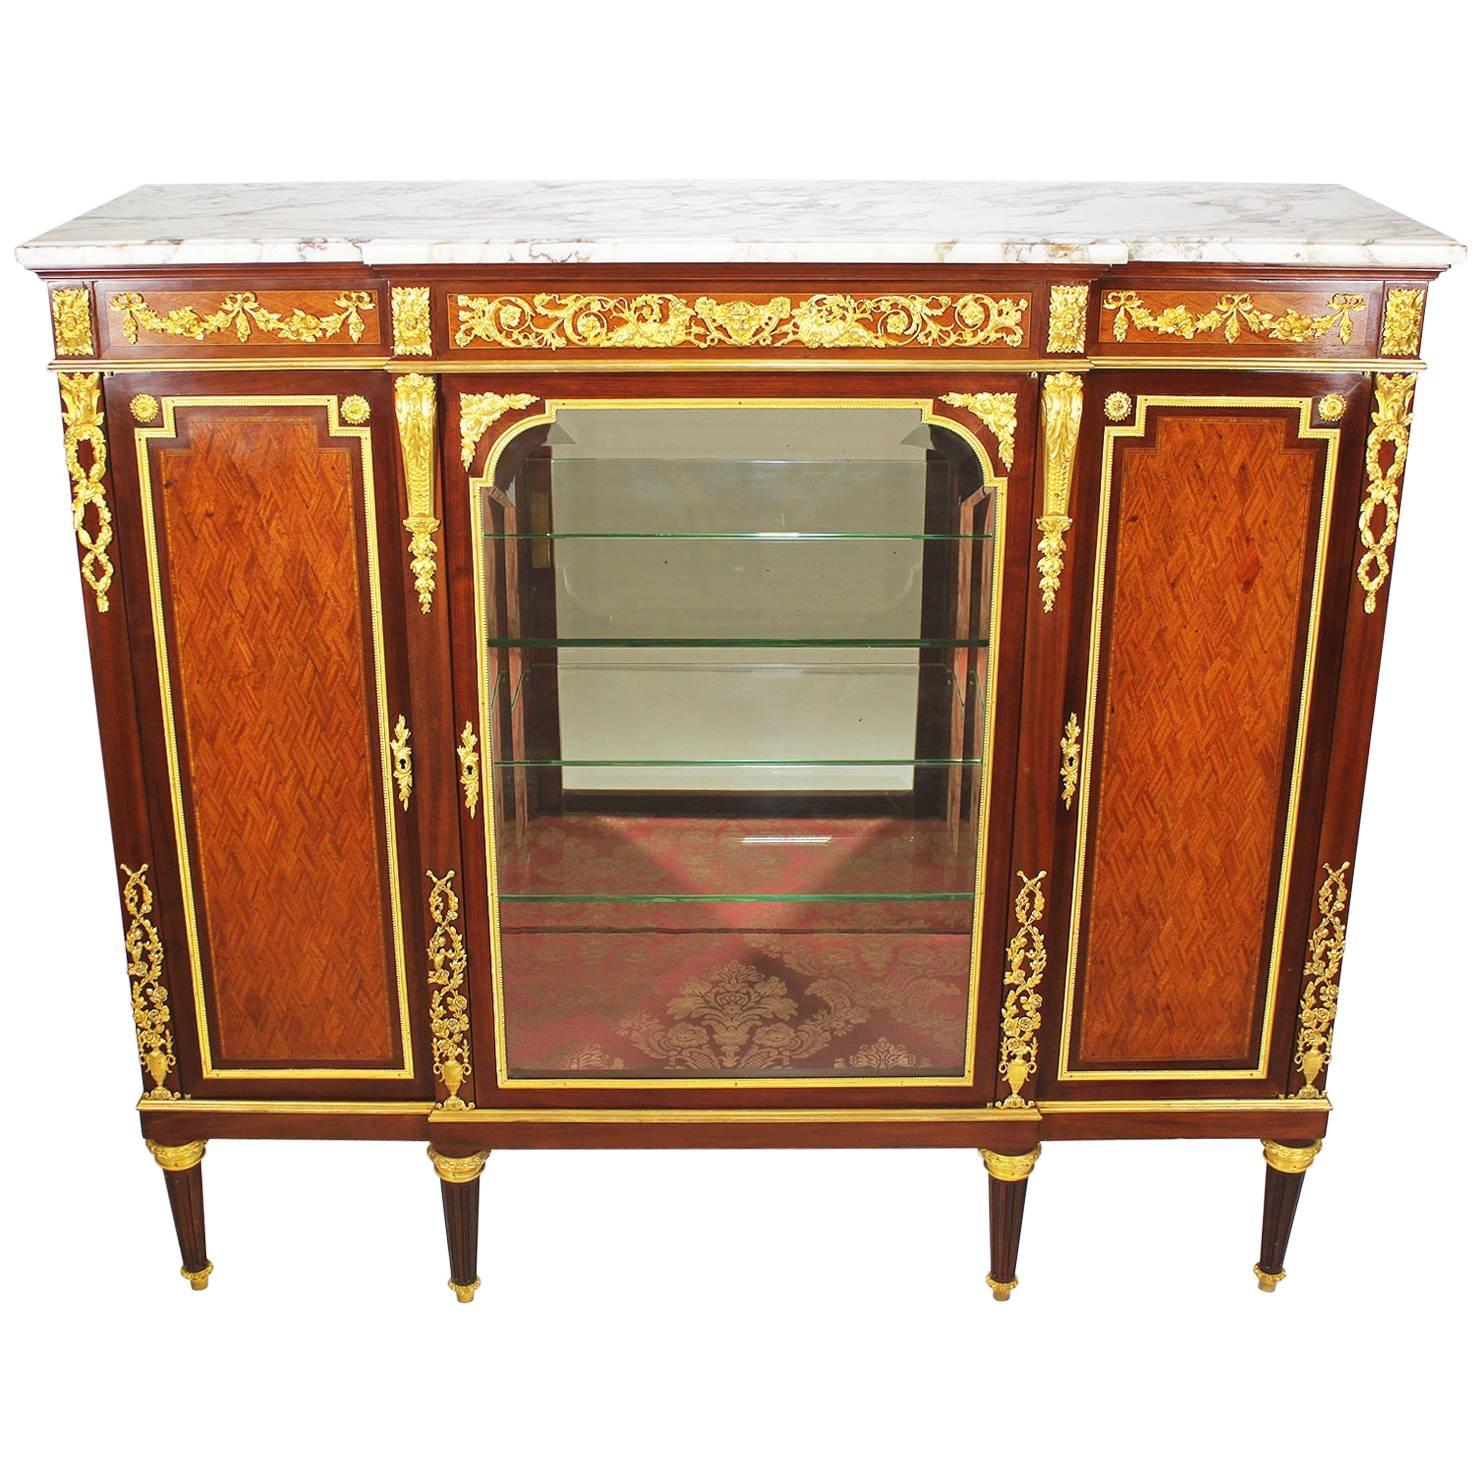 French 19th-20th Century Louis XVI Style Ormolu-Mounted Kingwood Vitrine Cabinet